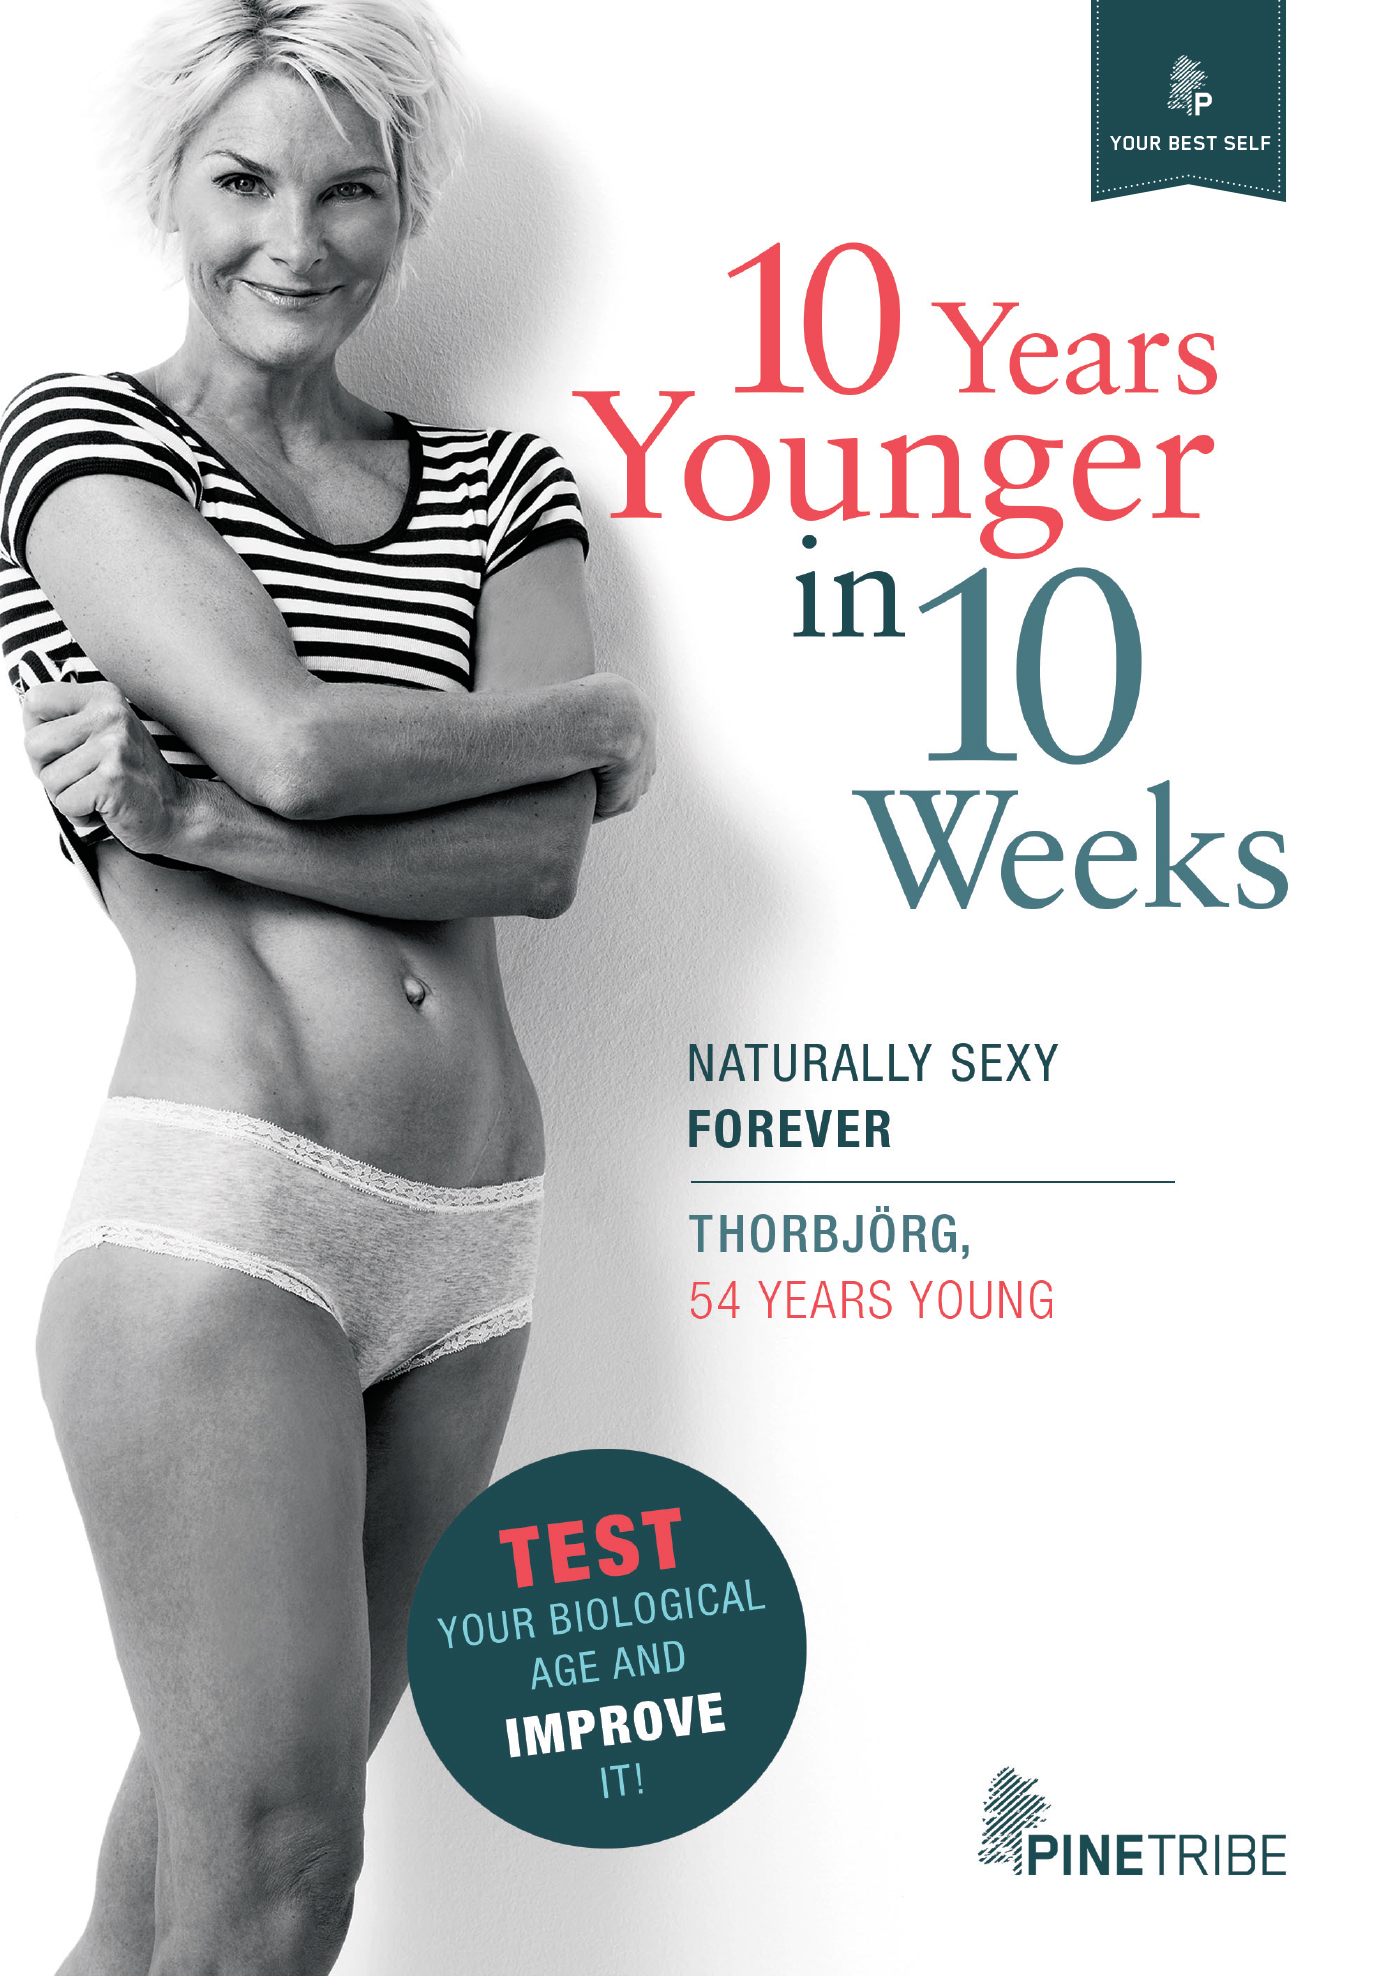 10 Years Younger in 10 Weeks